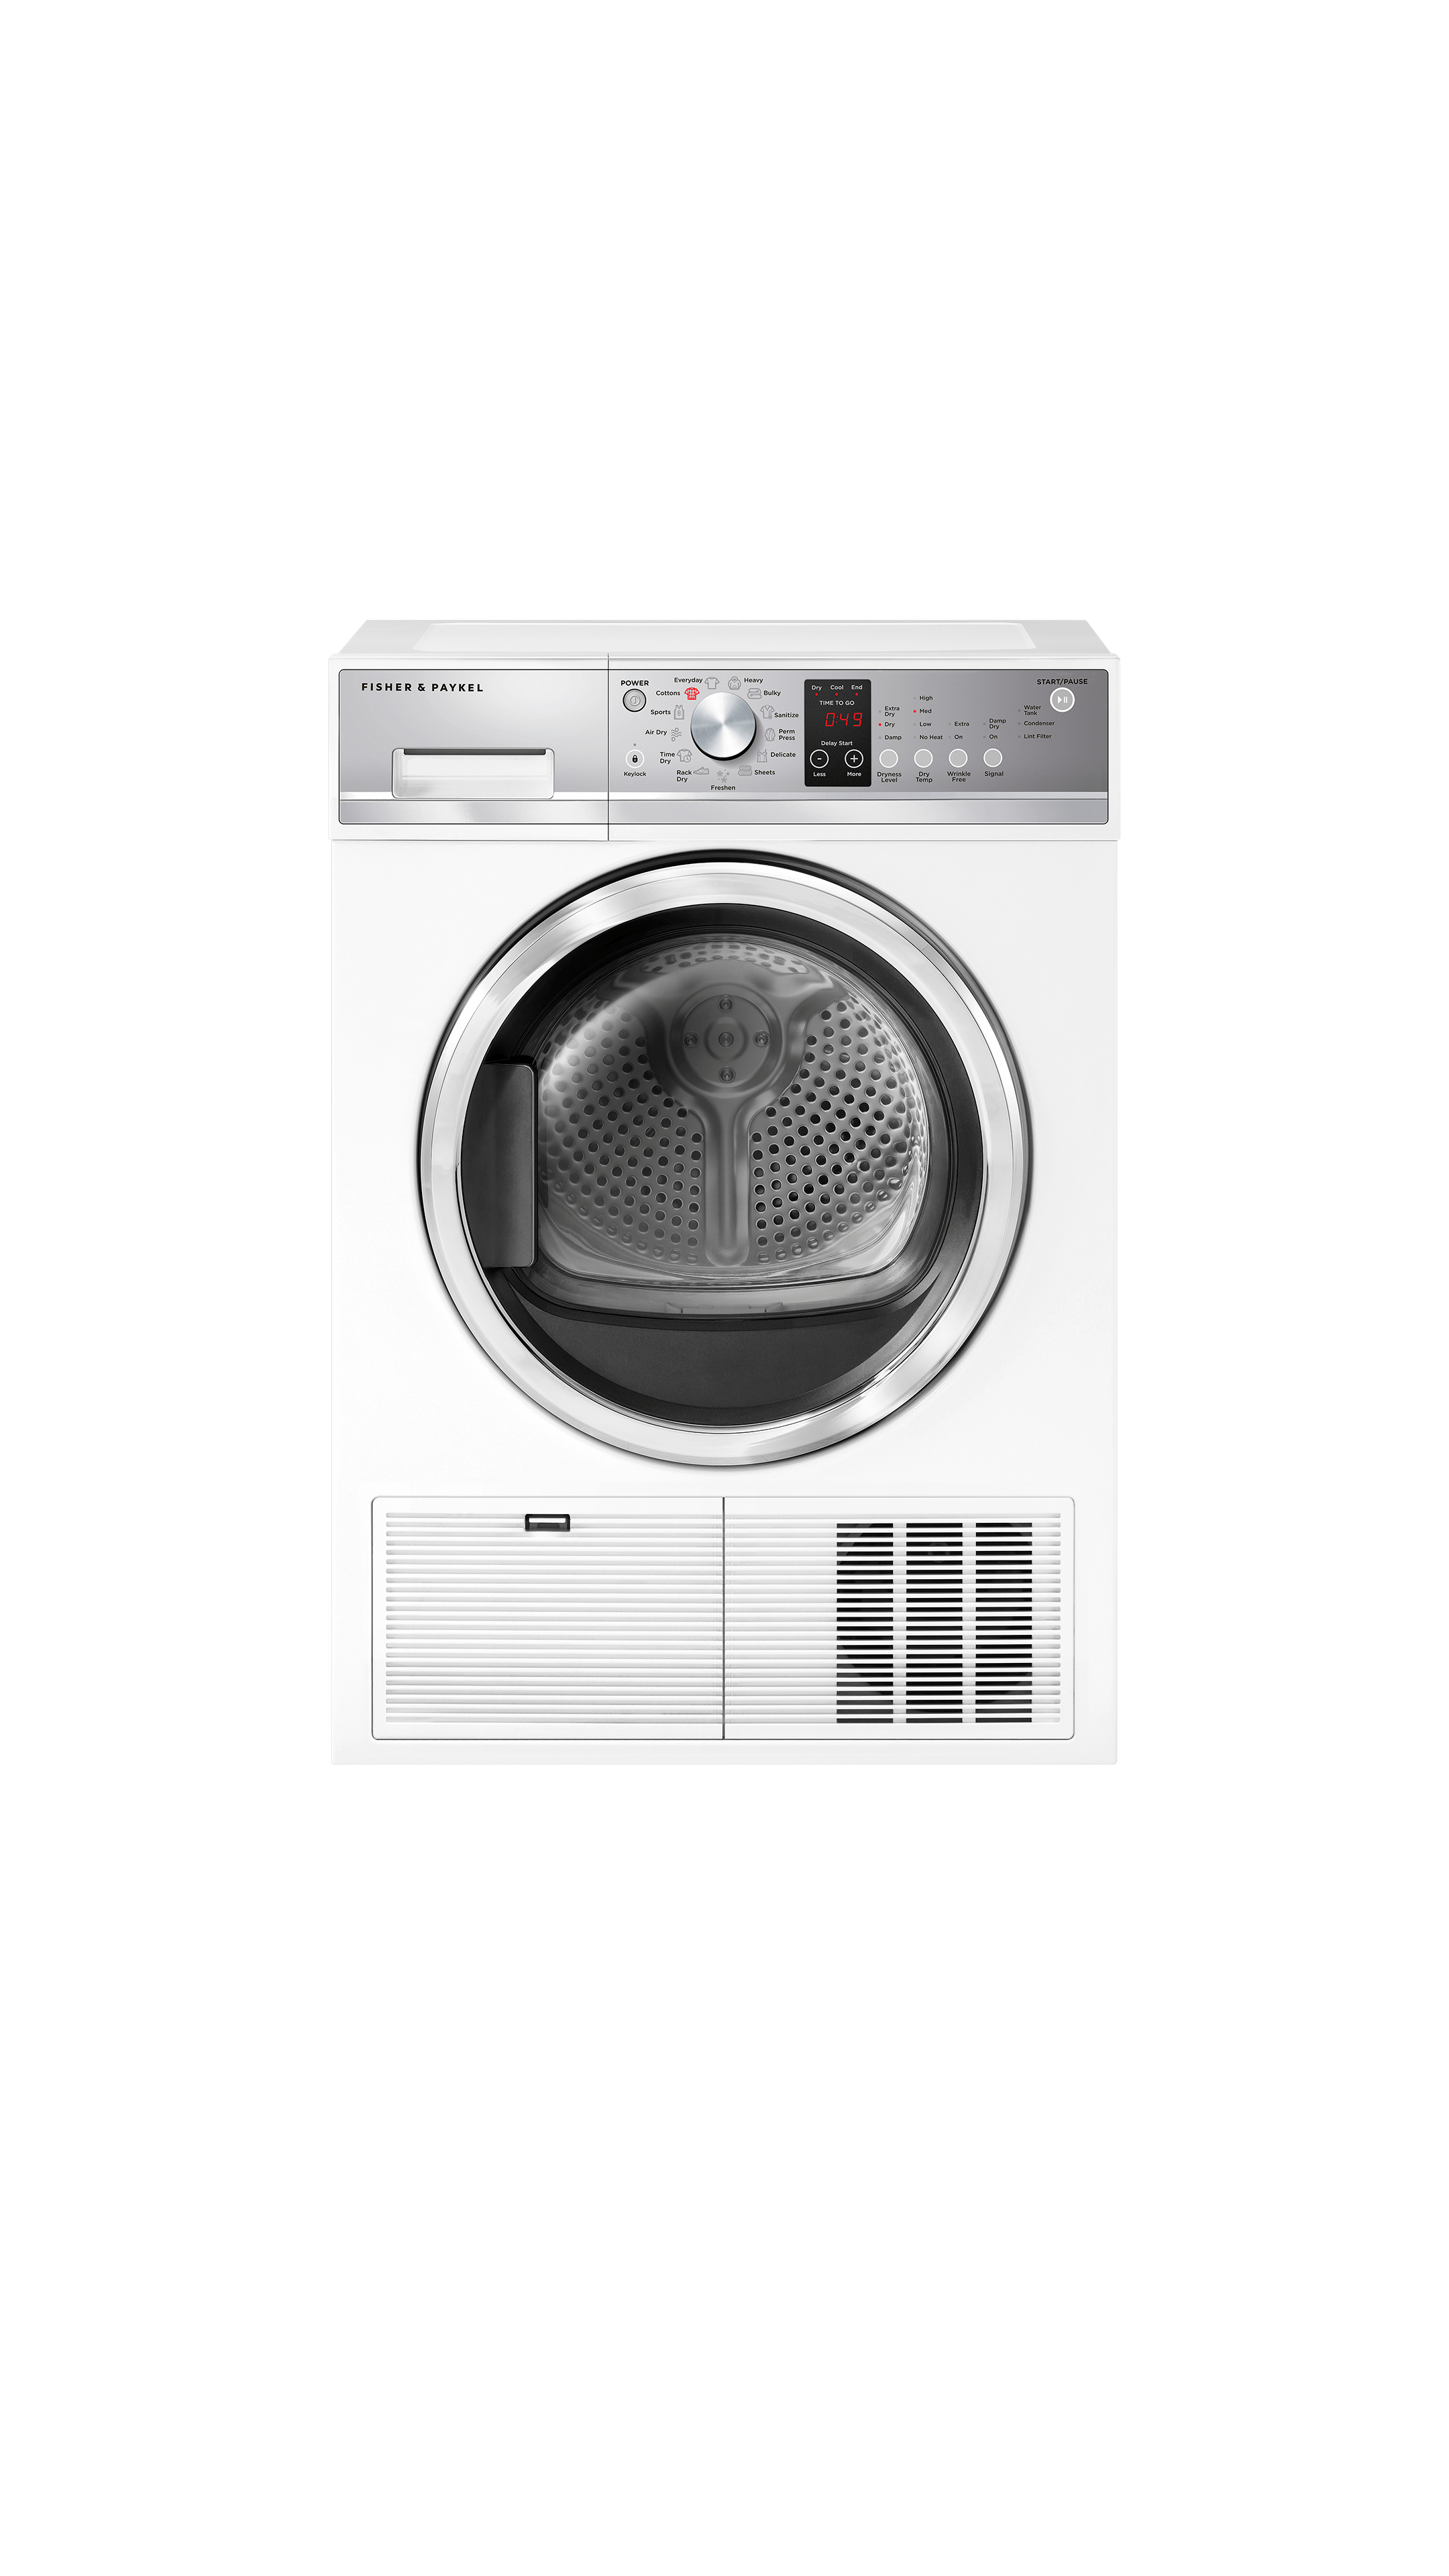 Fisher and Paykel Condensing Dryer, 4.0 cu ft